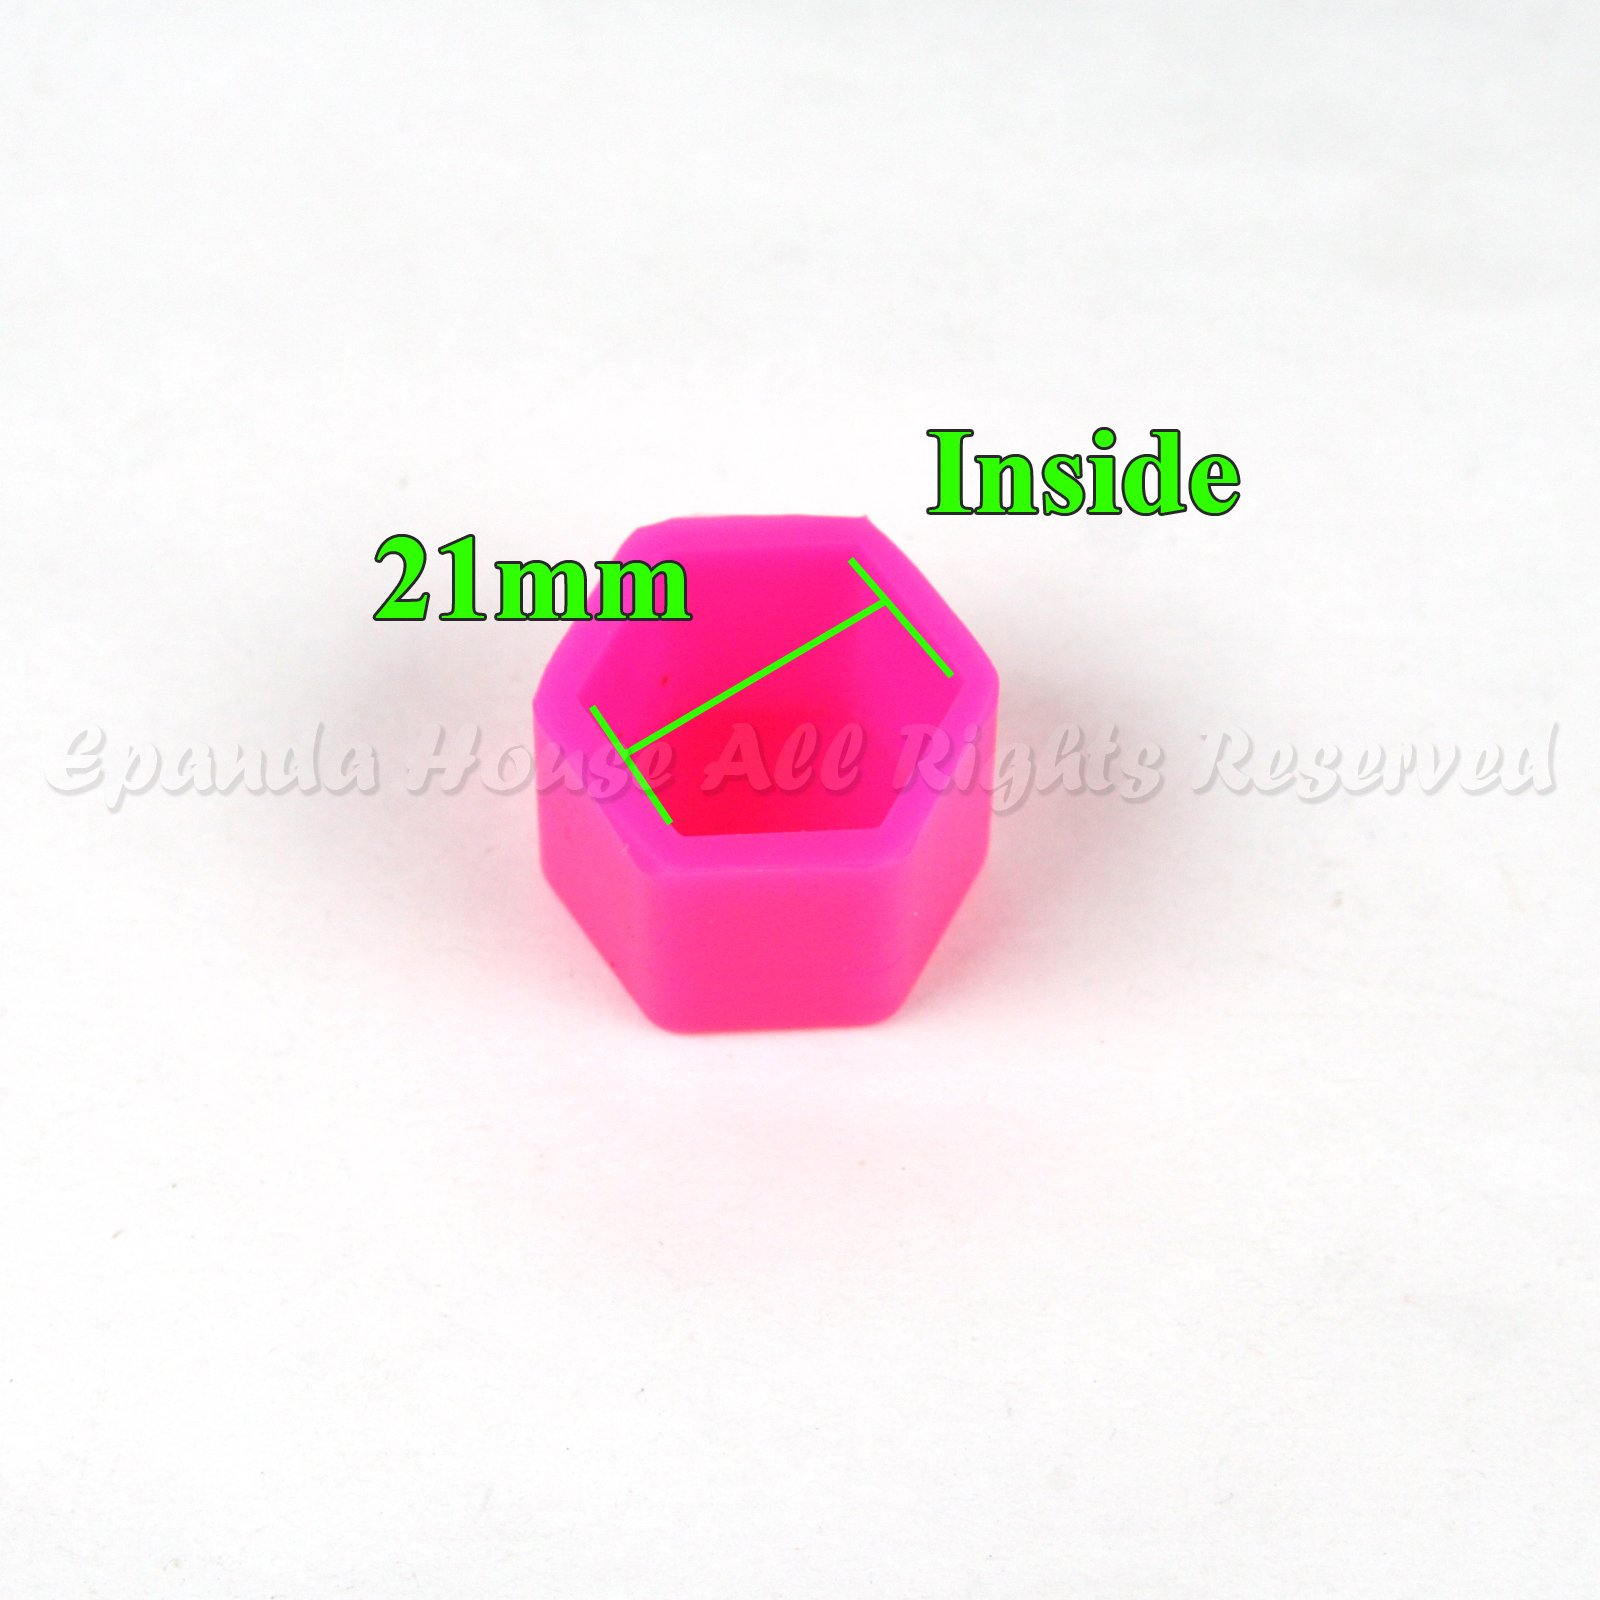 21mm 20X Glow In The Dark Blacklight Wheel Rim Lug Nuts Covers Cars/Bikes Pink by EpandaHouse (Image #2)